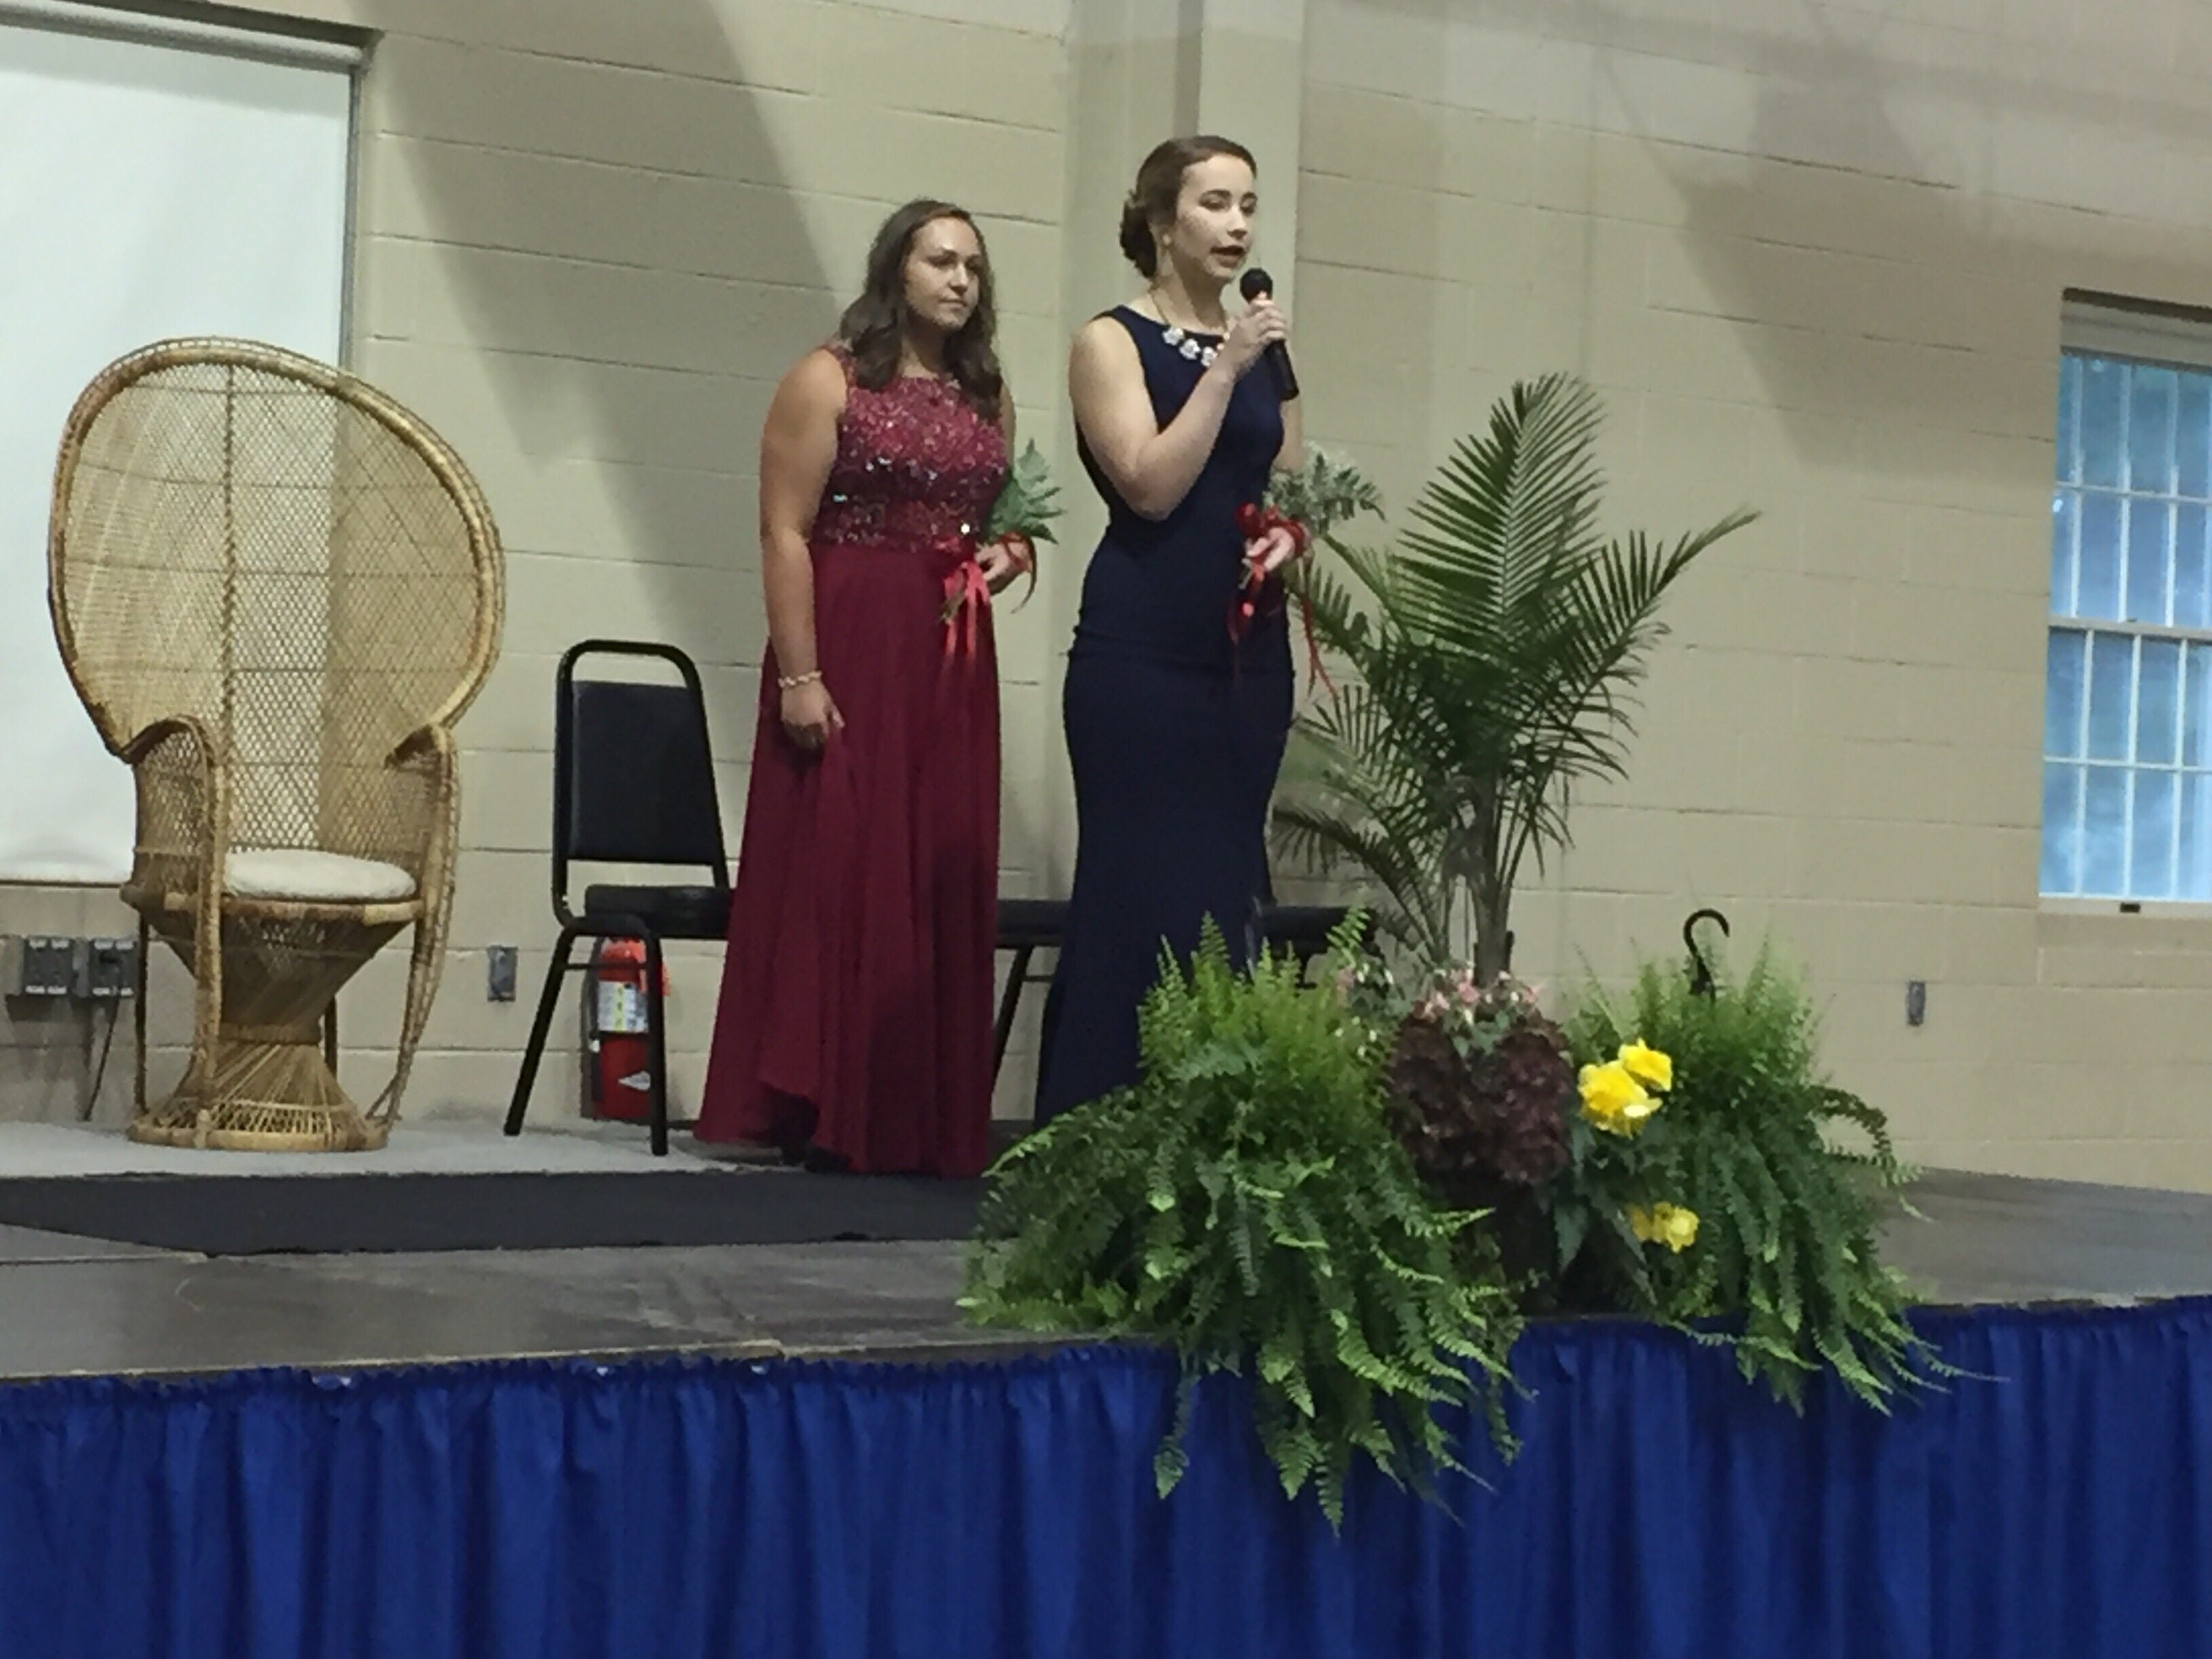 Marissa Weaver answers an impromptu question during the Lebanon Fair Queen proceedings.